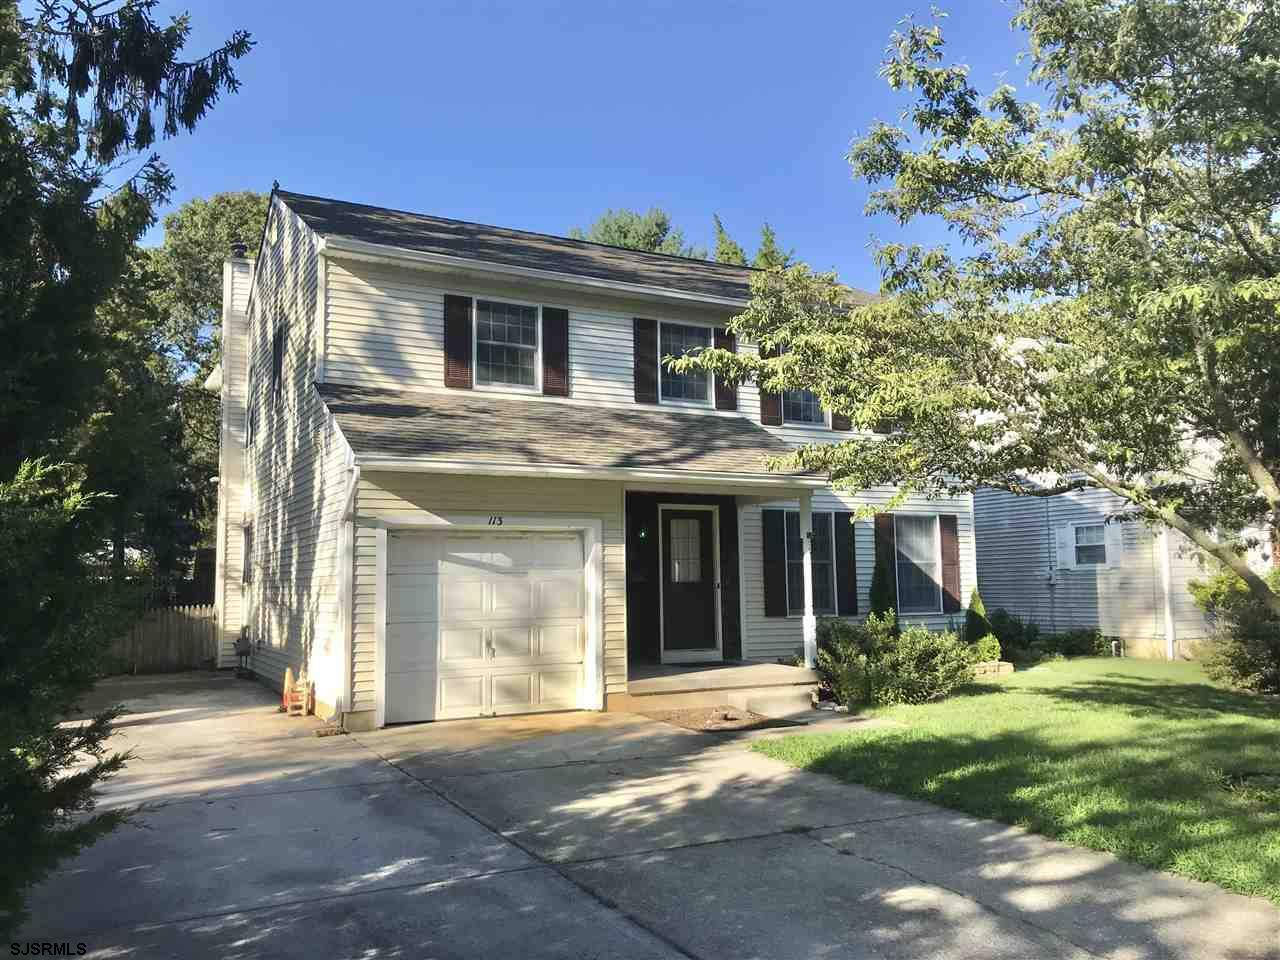 A great opportunity in this crazy GO-GO market to snatch a legit 4 bedroom/2.5 Colonial w/over 2,000 sq.ft including a formal L/R, formal D/R, large Eat-in kitchen, family room w/fireplace, garage & much more. MBR Suite w/private bath and walk-in closet, all 3 other bedrooms nice size, big laundry/utility rm, deck. This home will require a bit of TLC, carpet/flooring, painting, and tad deferred maintenance-but for this price/location...do it yourself and raise a generation in among NF's finest neighborhoods!